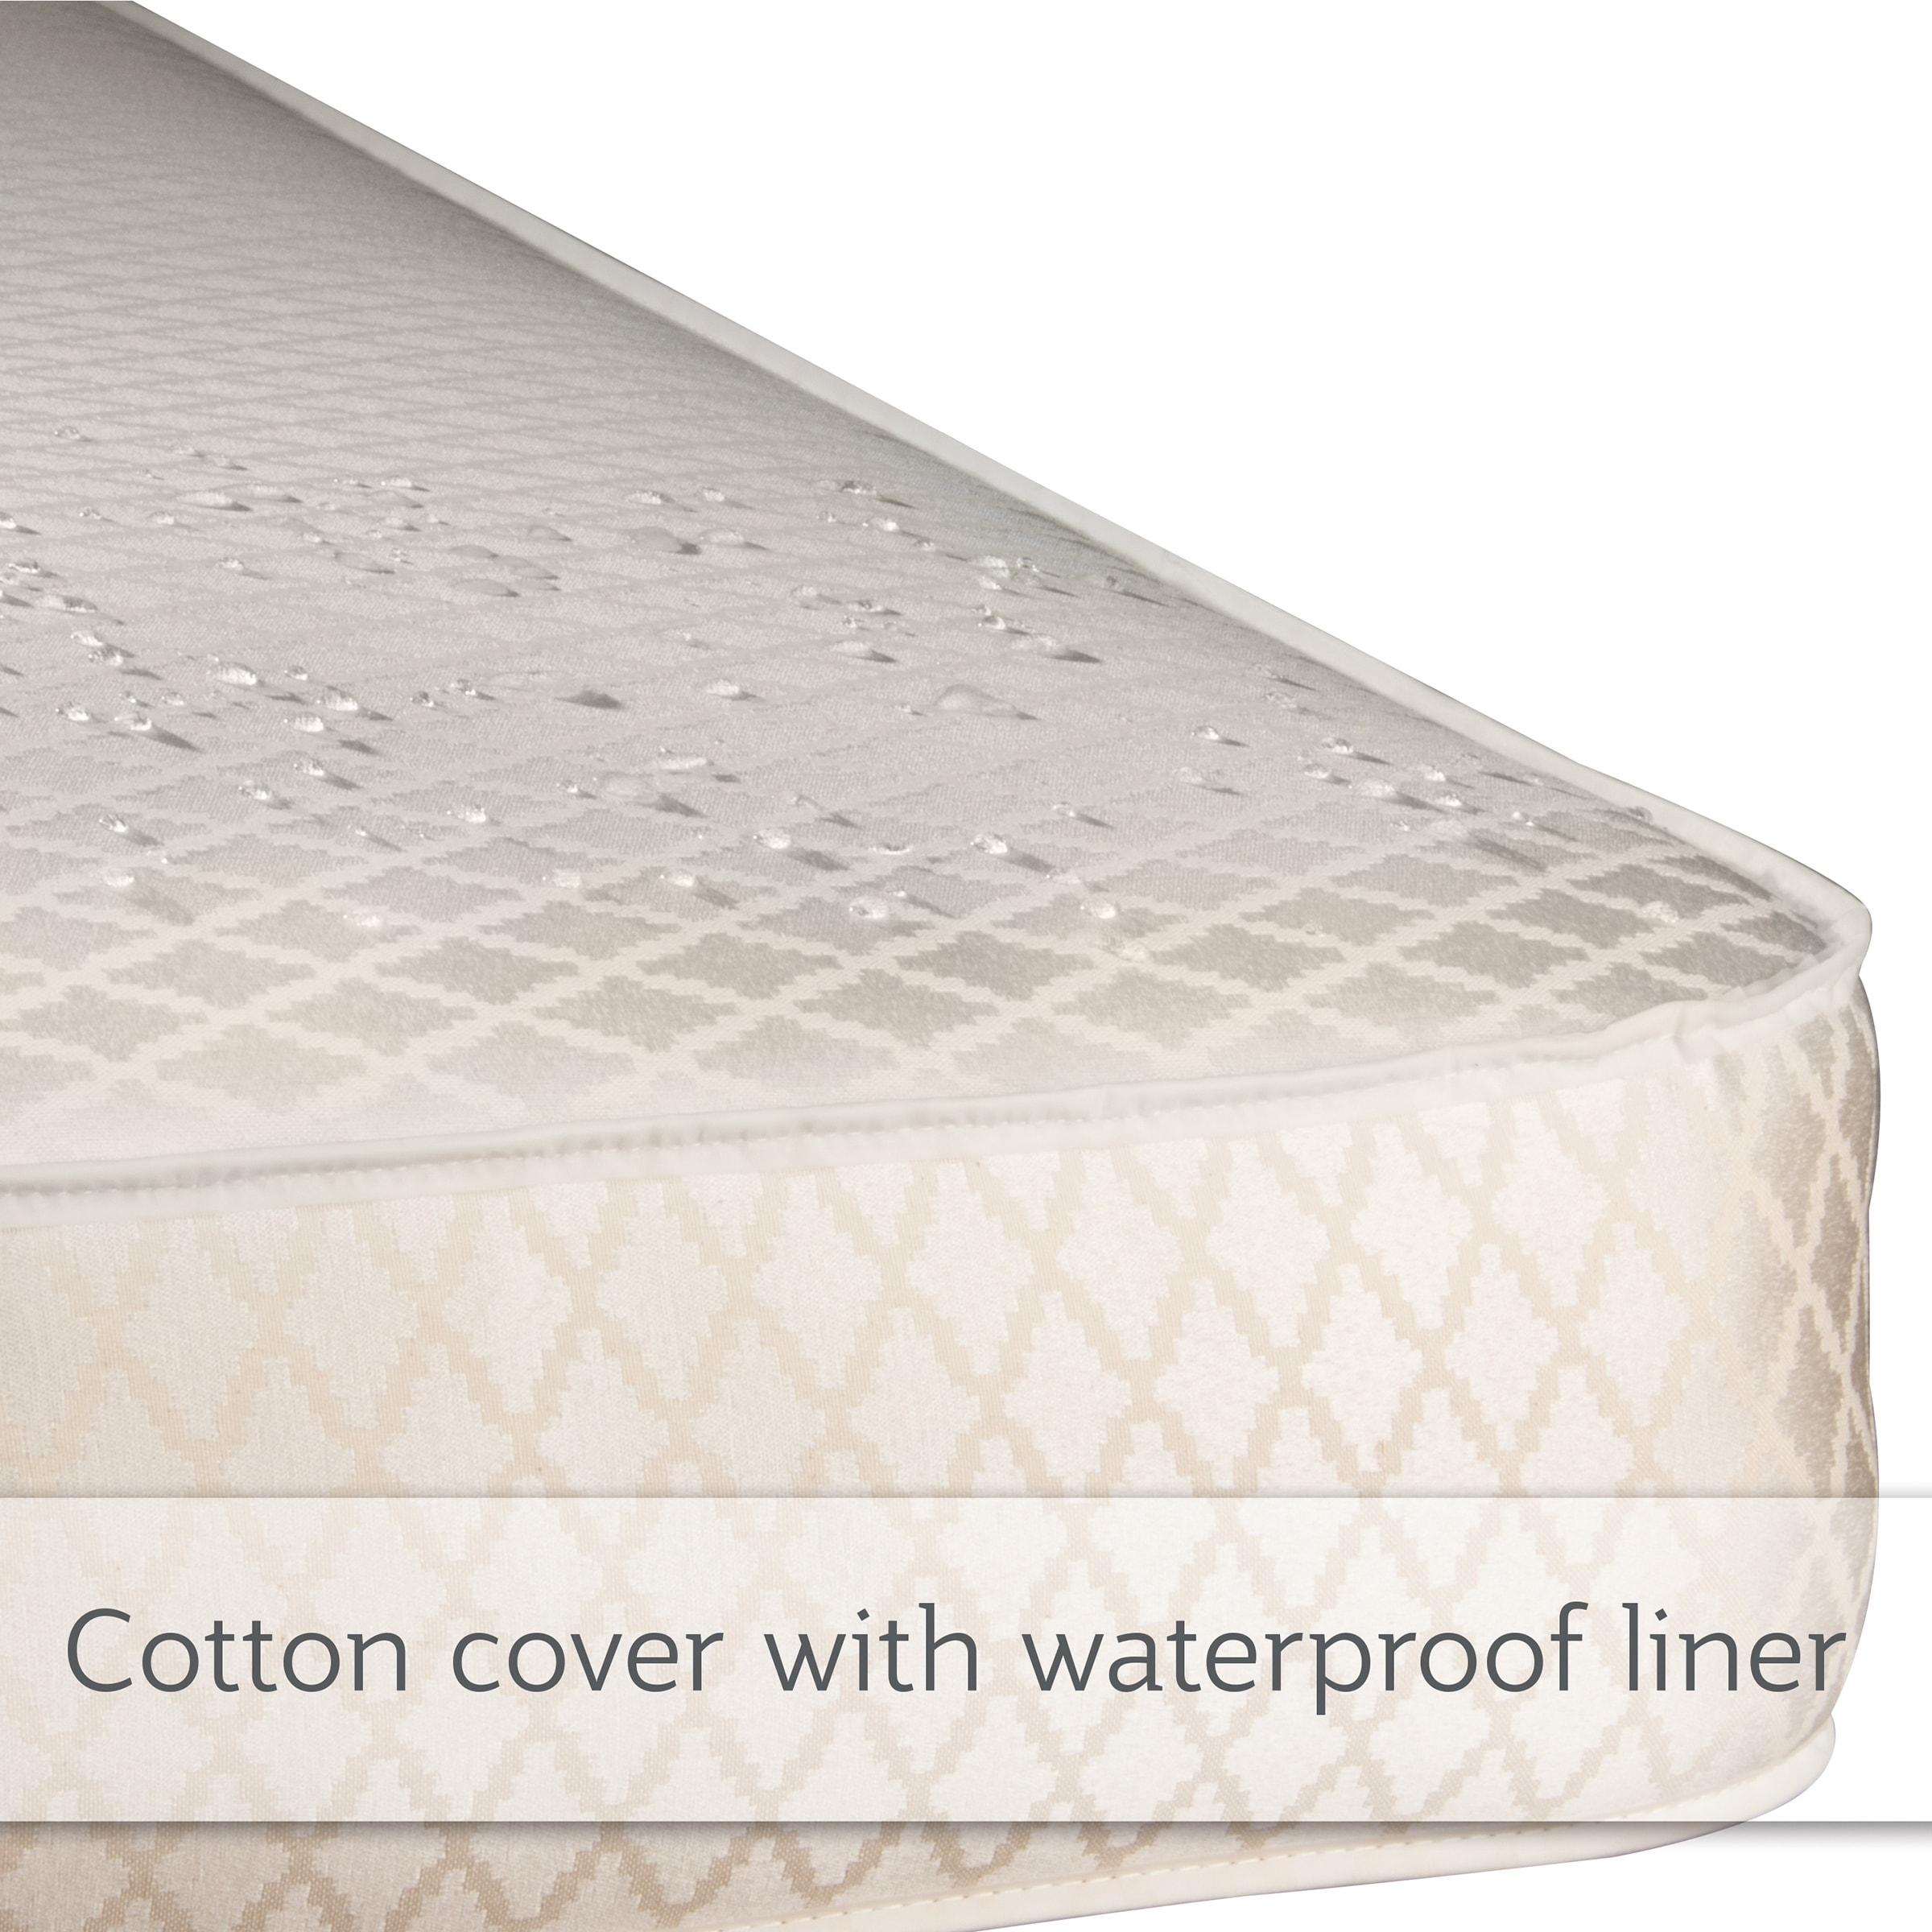 Sealy Soybean Plush Foam Core Crib Mattress With Waterproof Cover Gold Overstock 6022252